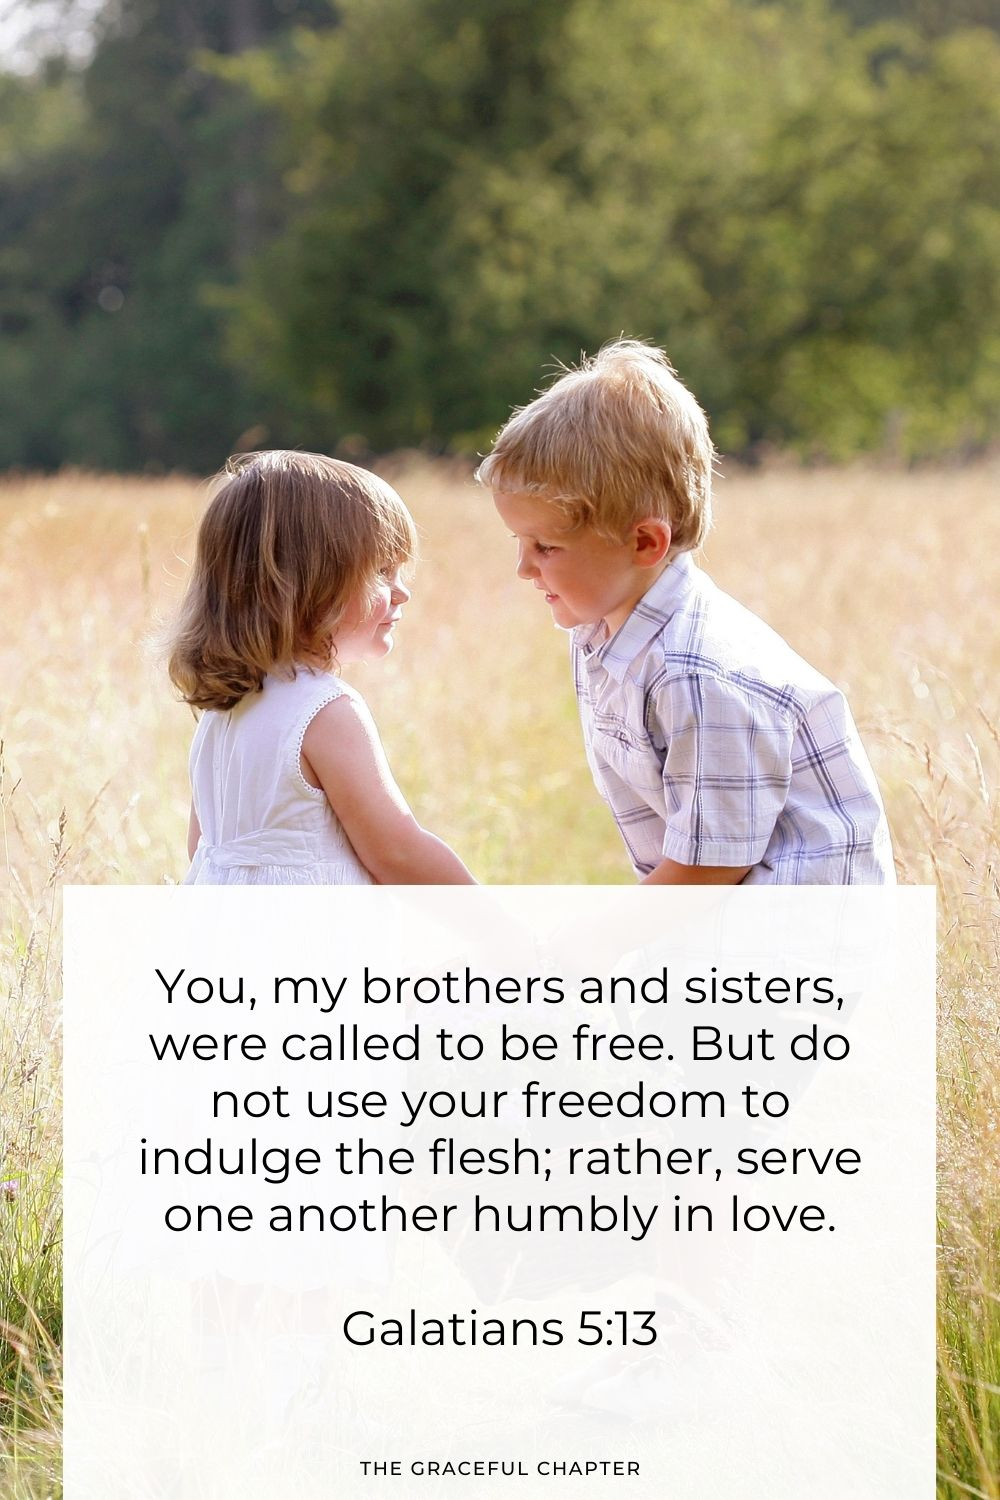 You, my brothers and sisters, were called to be free. But do not use your freedom to indulge the flesh; rather, serve one another humbly in love. Galatians 5:13